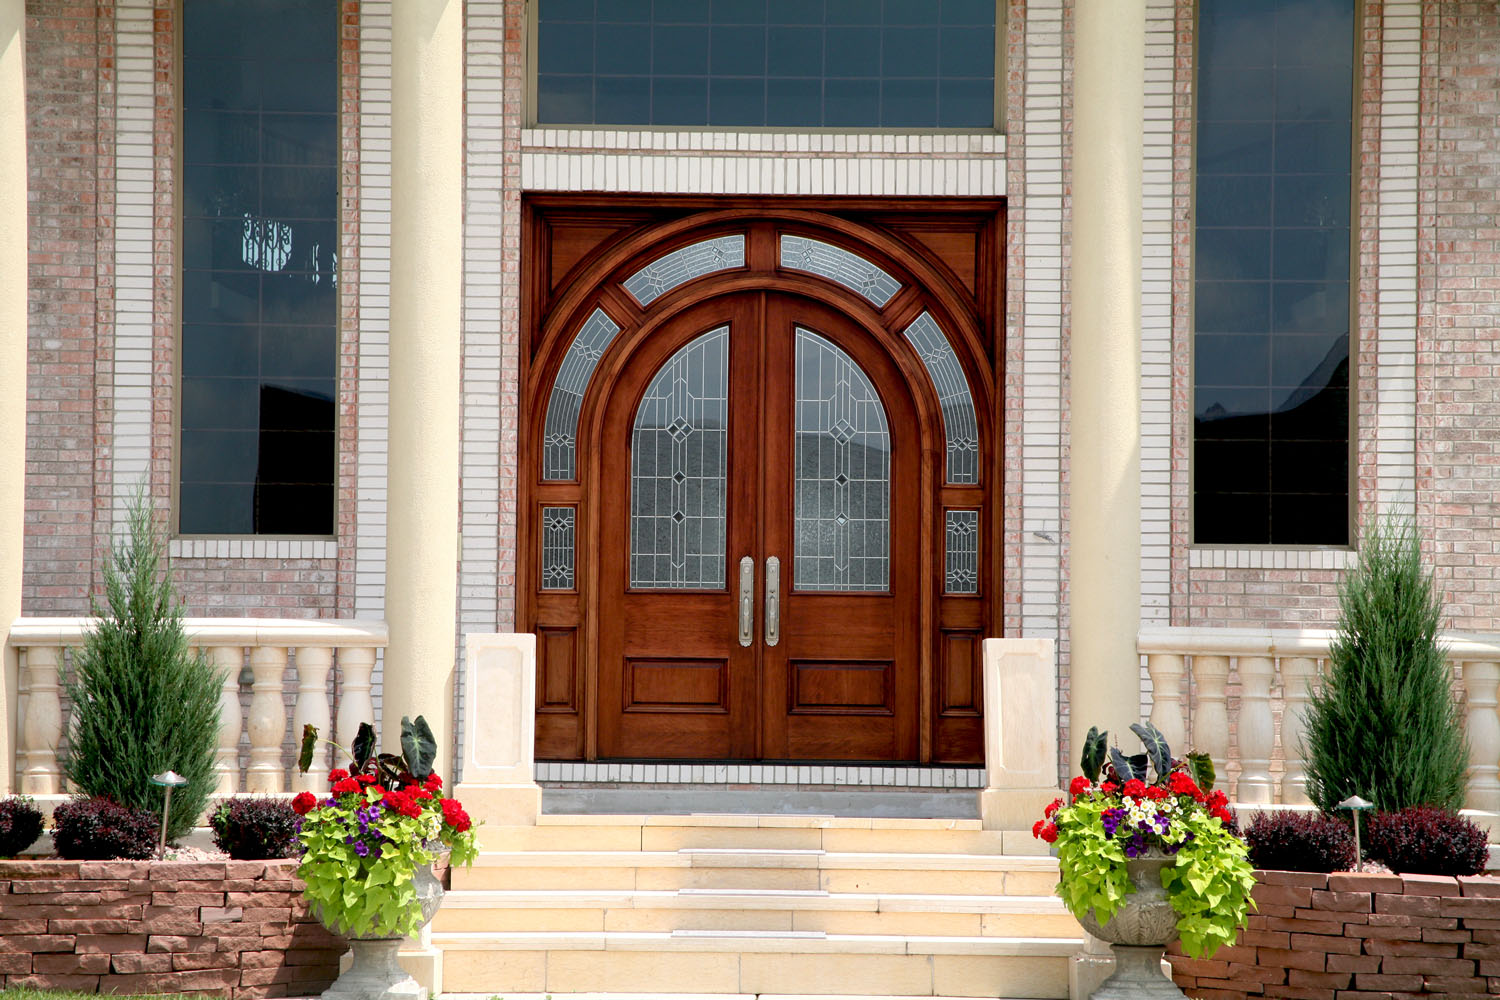 1000 #6C311A Arched Top Radius Wood Doors For Sale In Indianapolis NICKSBUILDING  image Arched Wood Entry Doors 40831500